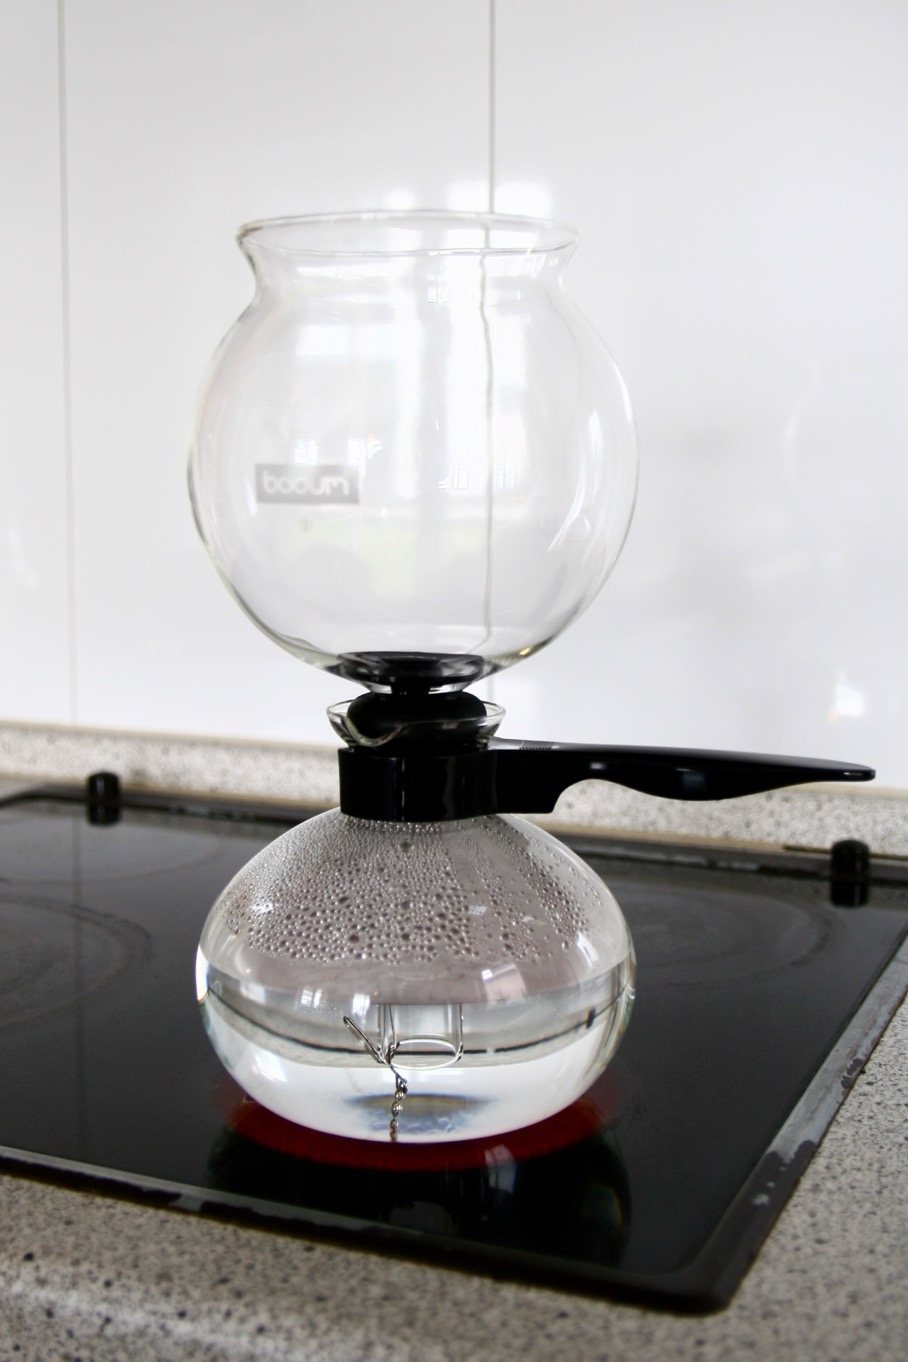 Position the Vacuum Coffee Maker over a heatsource and set it to a medium setting